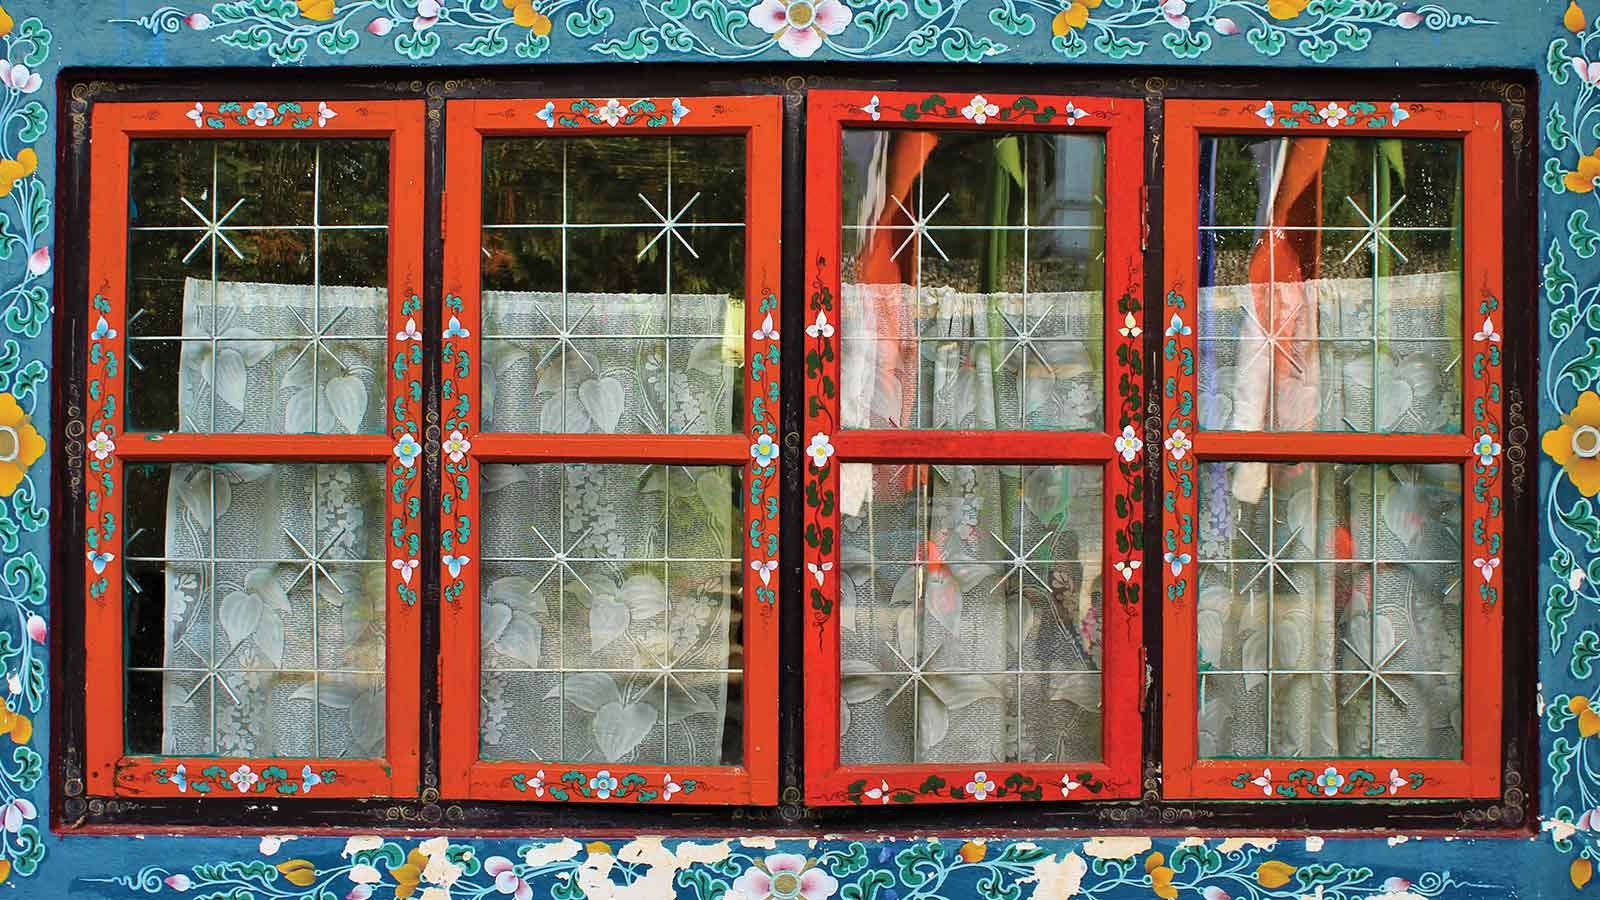 A colorful window in India